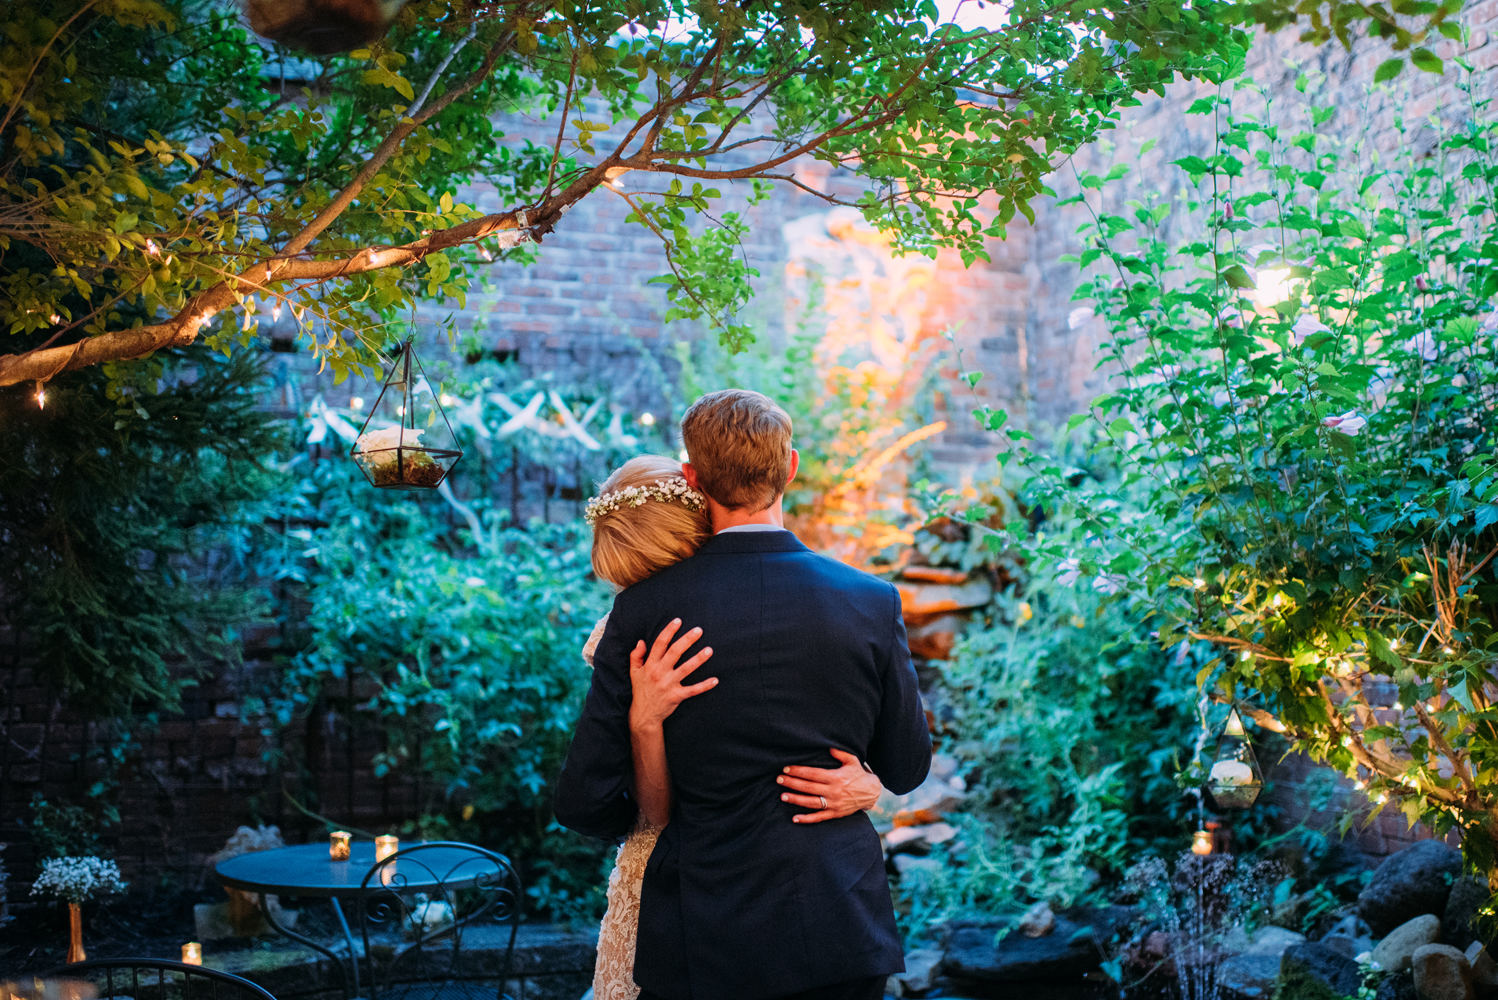 Southside pittsburgh intimate night time garden wedding reception